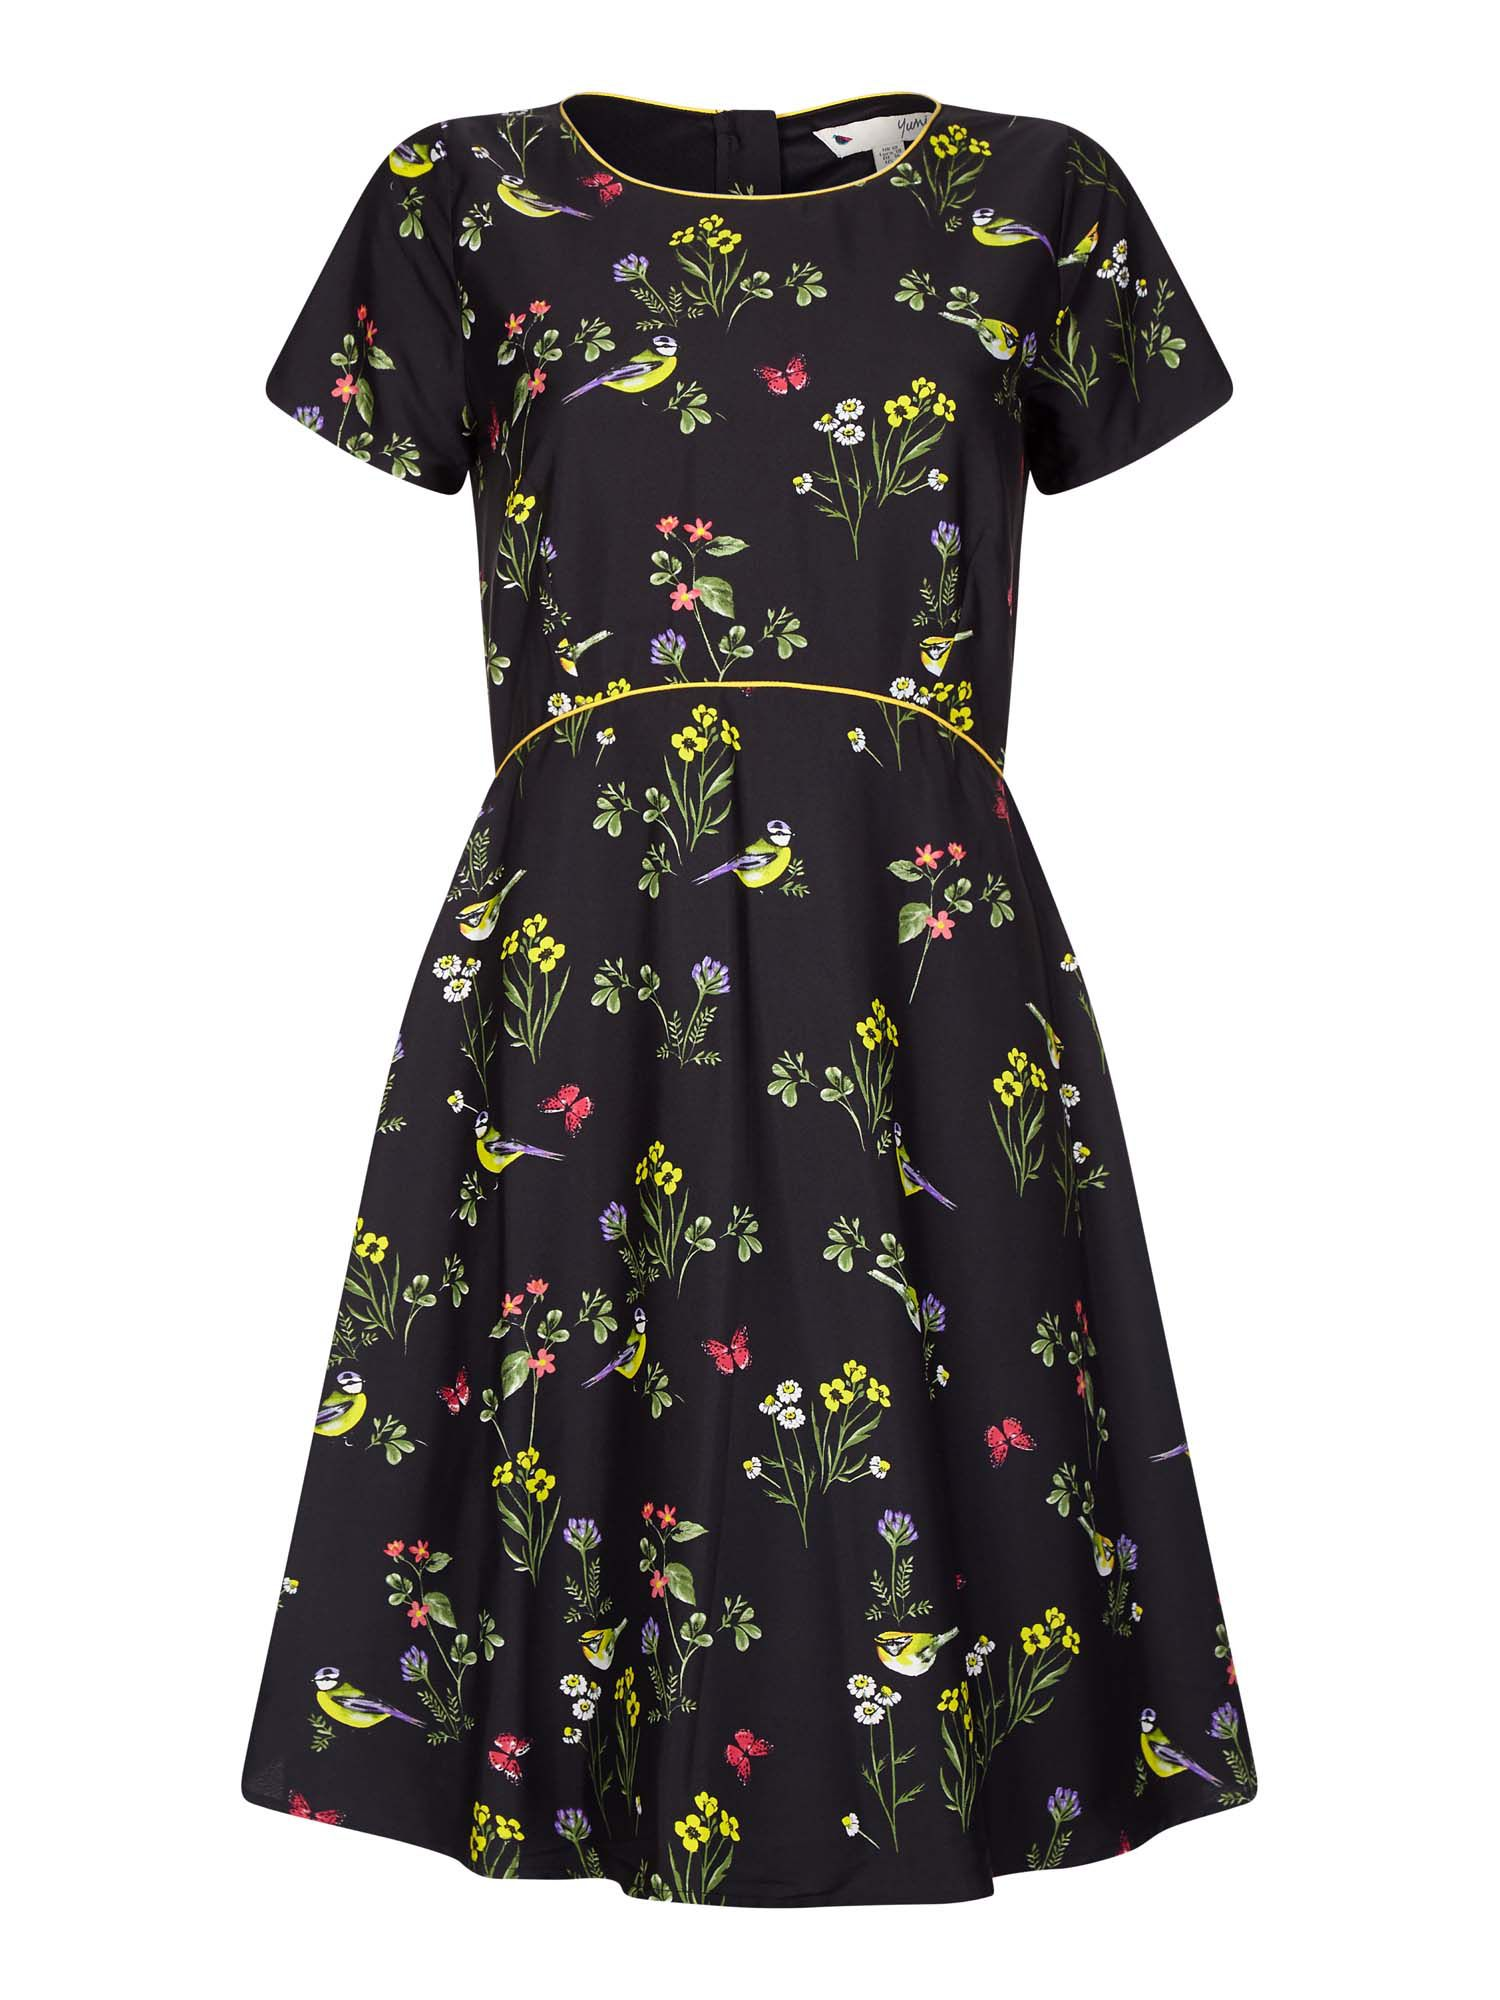 Photo of Yumi garden bird patterned tea dress- black